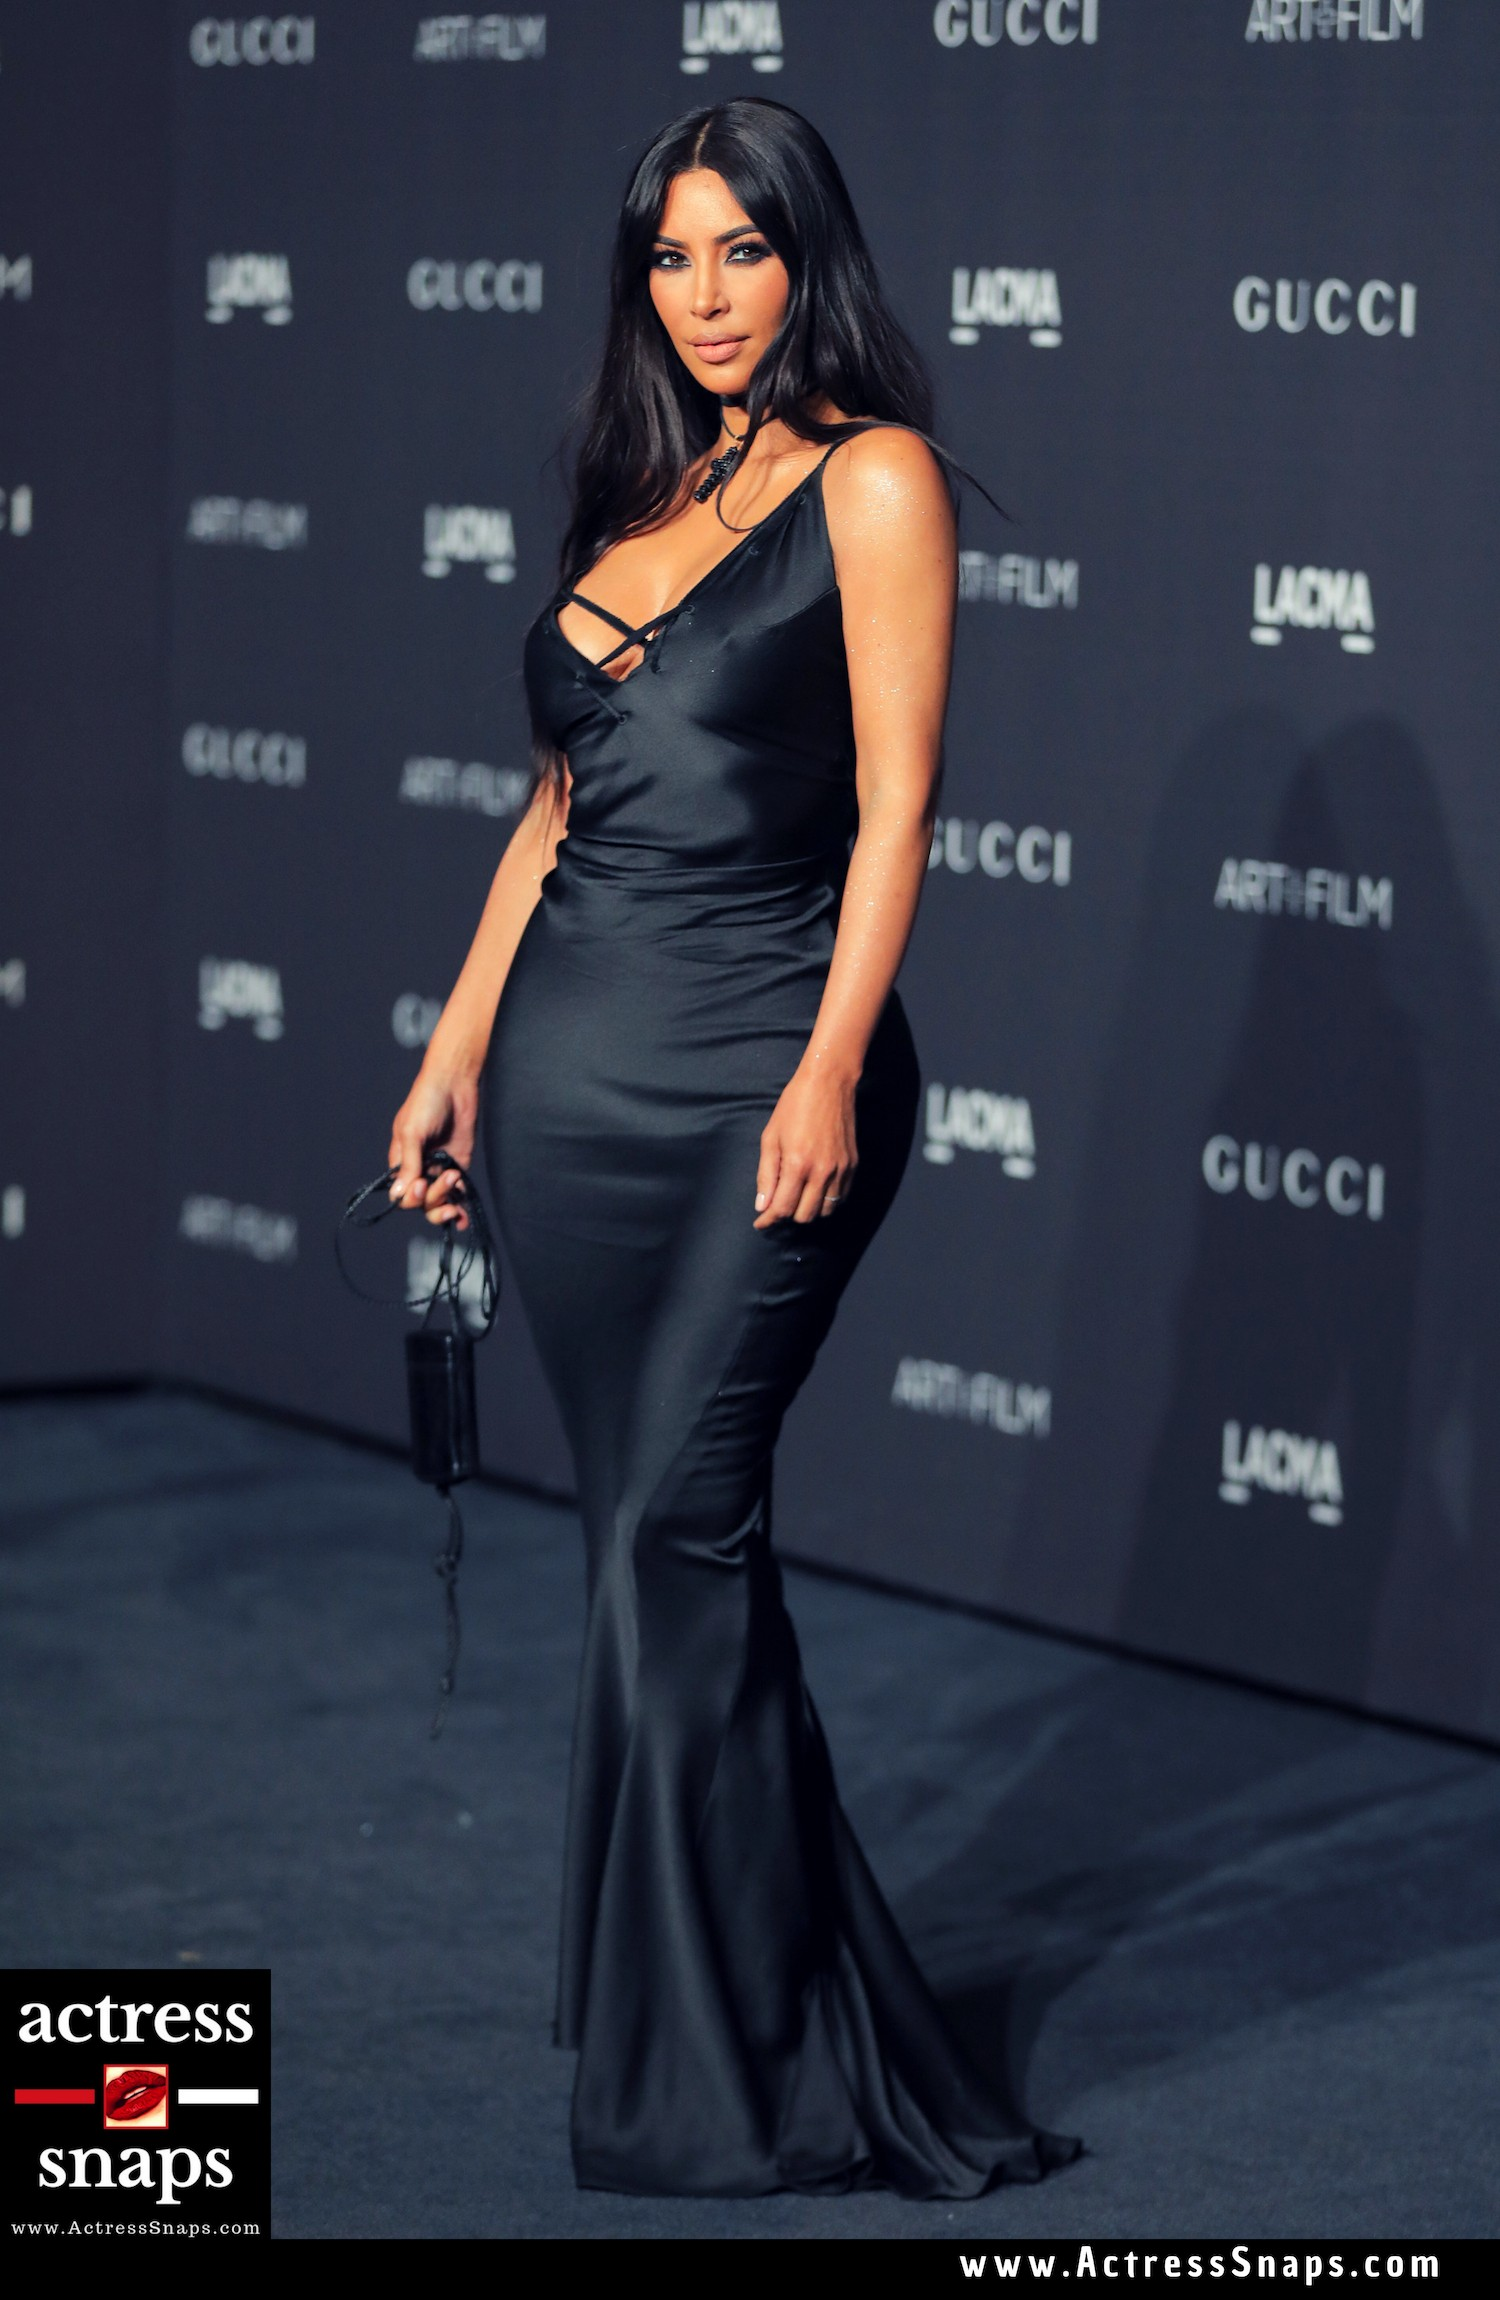 Kim Kardashian Latest pictuers from LACMA Event - Sexy Actress Pictures | Hot Actress Pictures - ActressSnaps.com